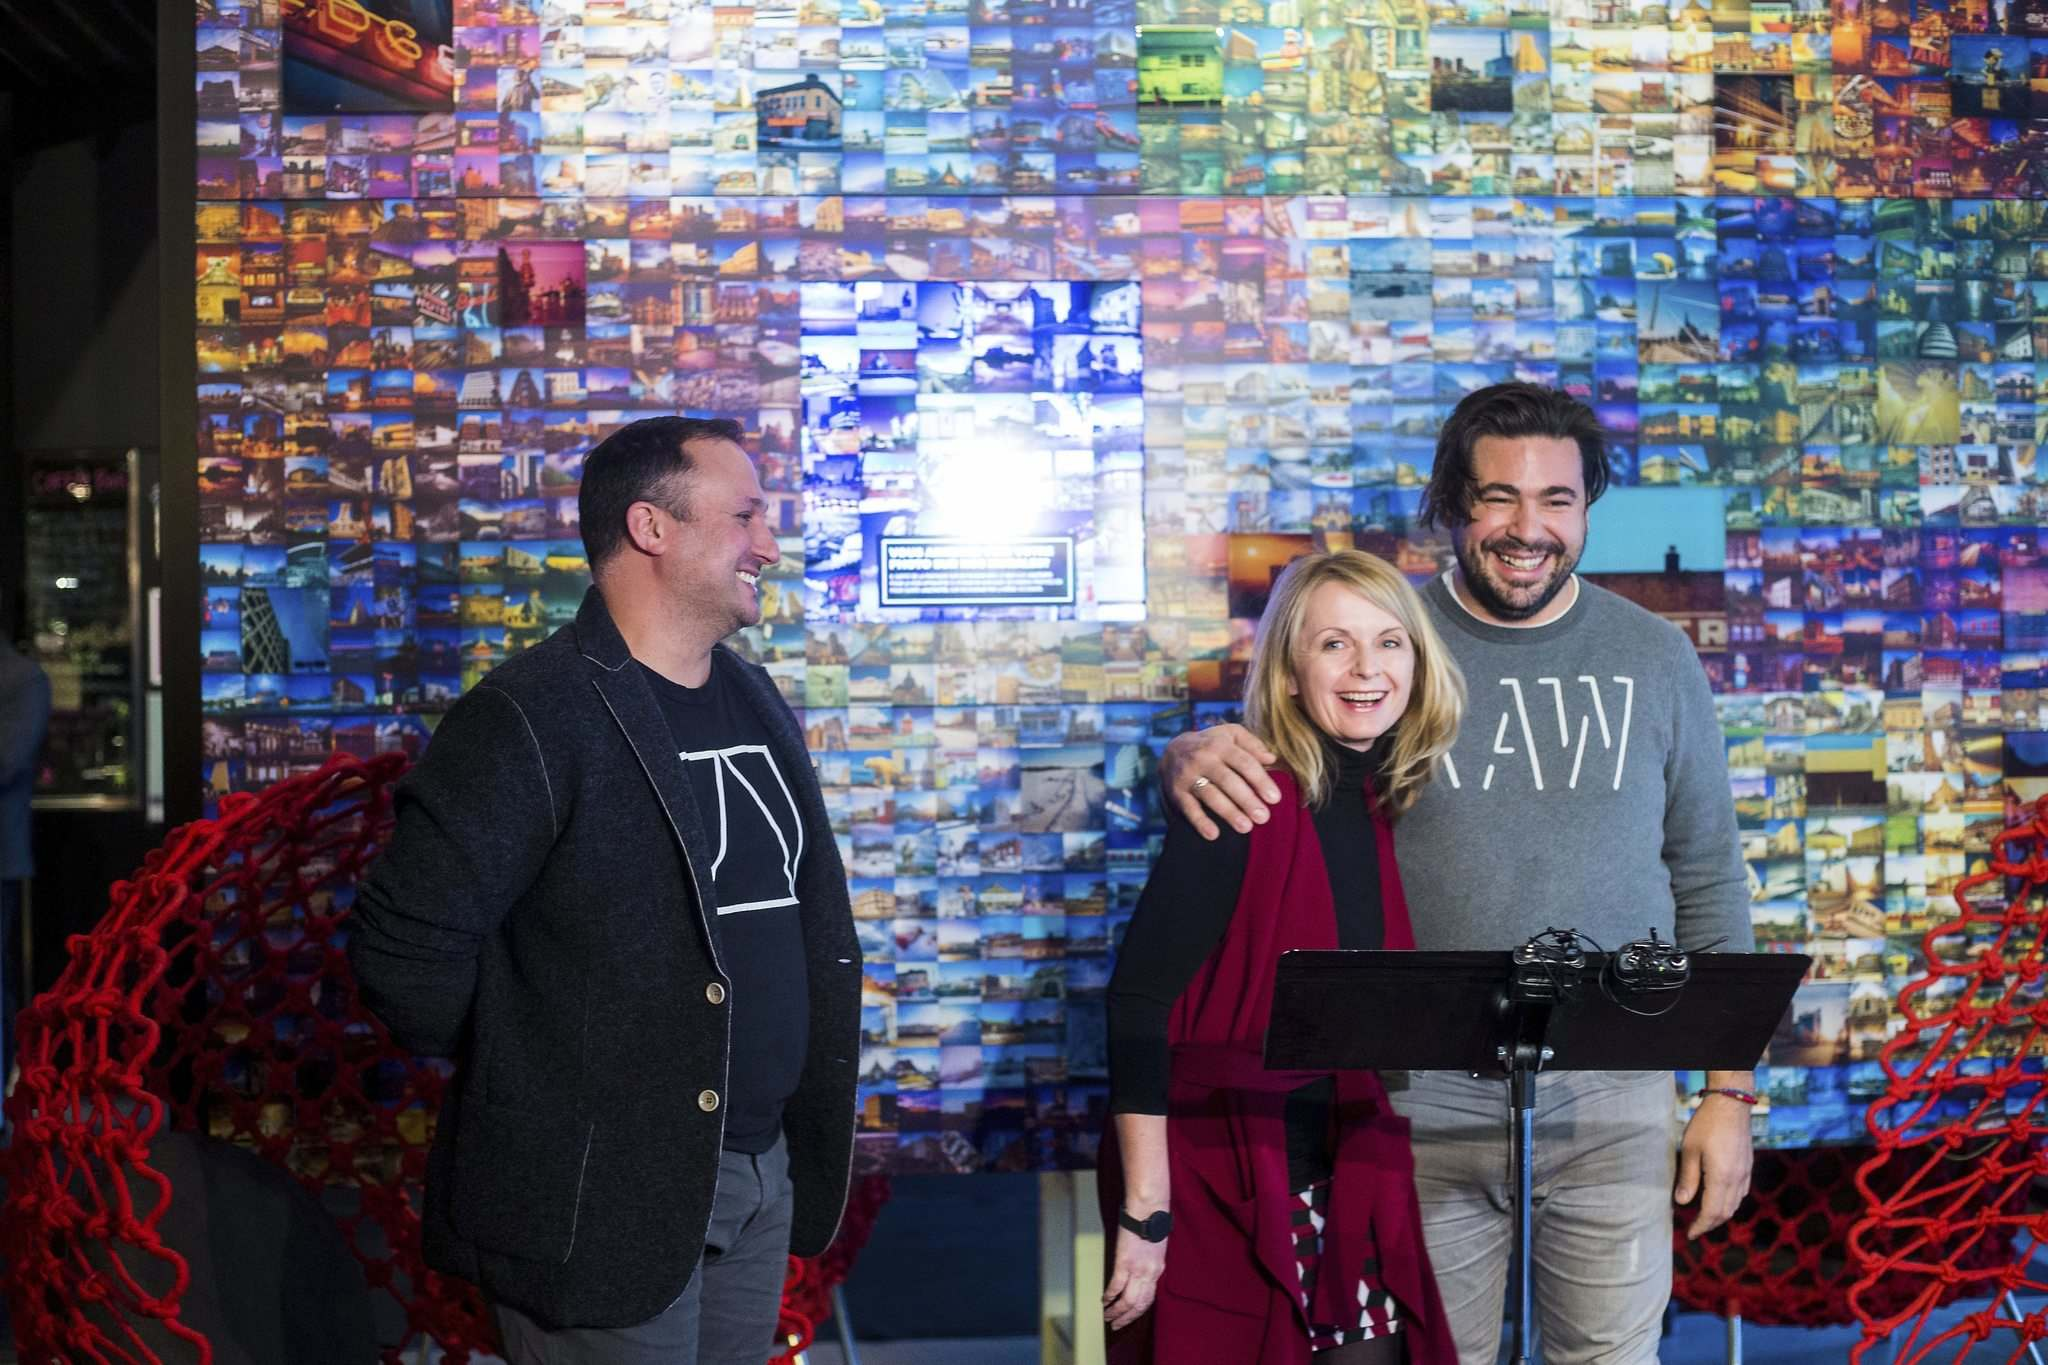 Joe Kalturnyk, designer and RAW:almond cofounder (left), Laurie Barkman, ALT general manager, and Mandel Hitzer, chef and RAW:almond co-founder announce the lineup for this year's RAW:almond at the ALT Hotel Monday.